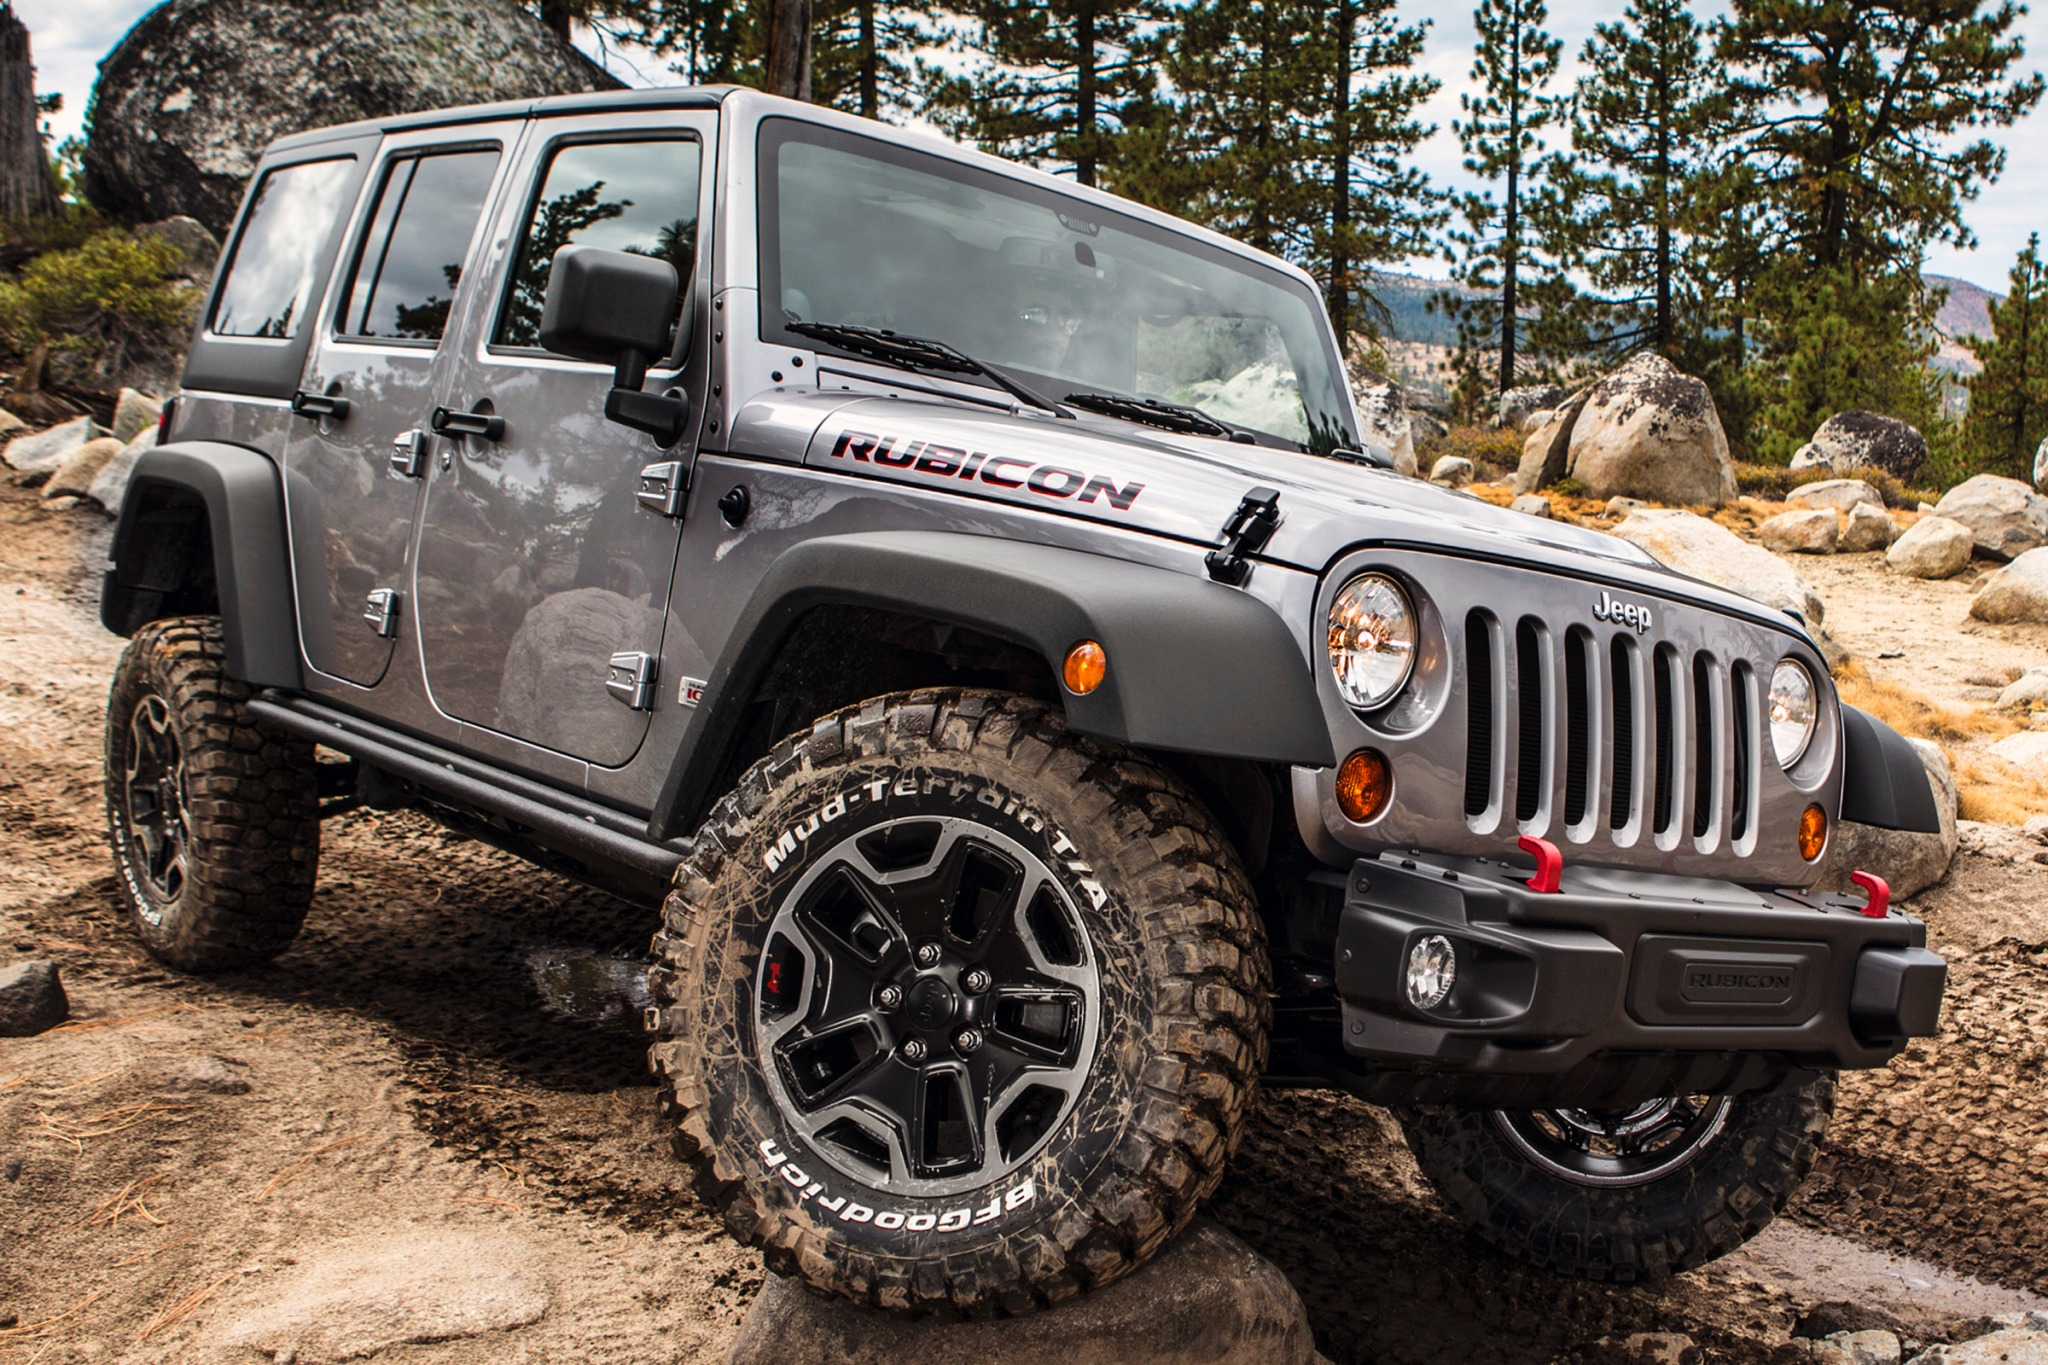 cyl orange awesomeamazinggreat suv sunset great v unlimited aut pearlcoat rubicon wrangler product jeep